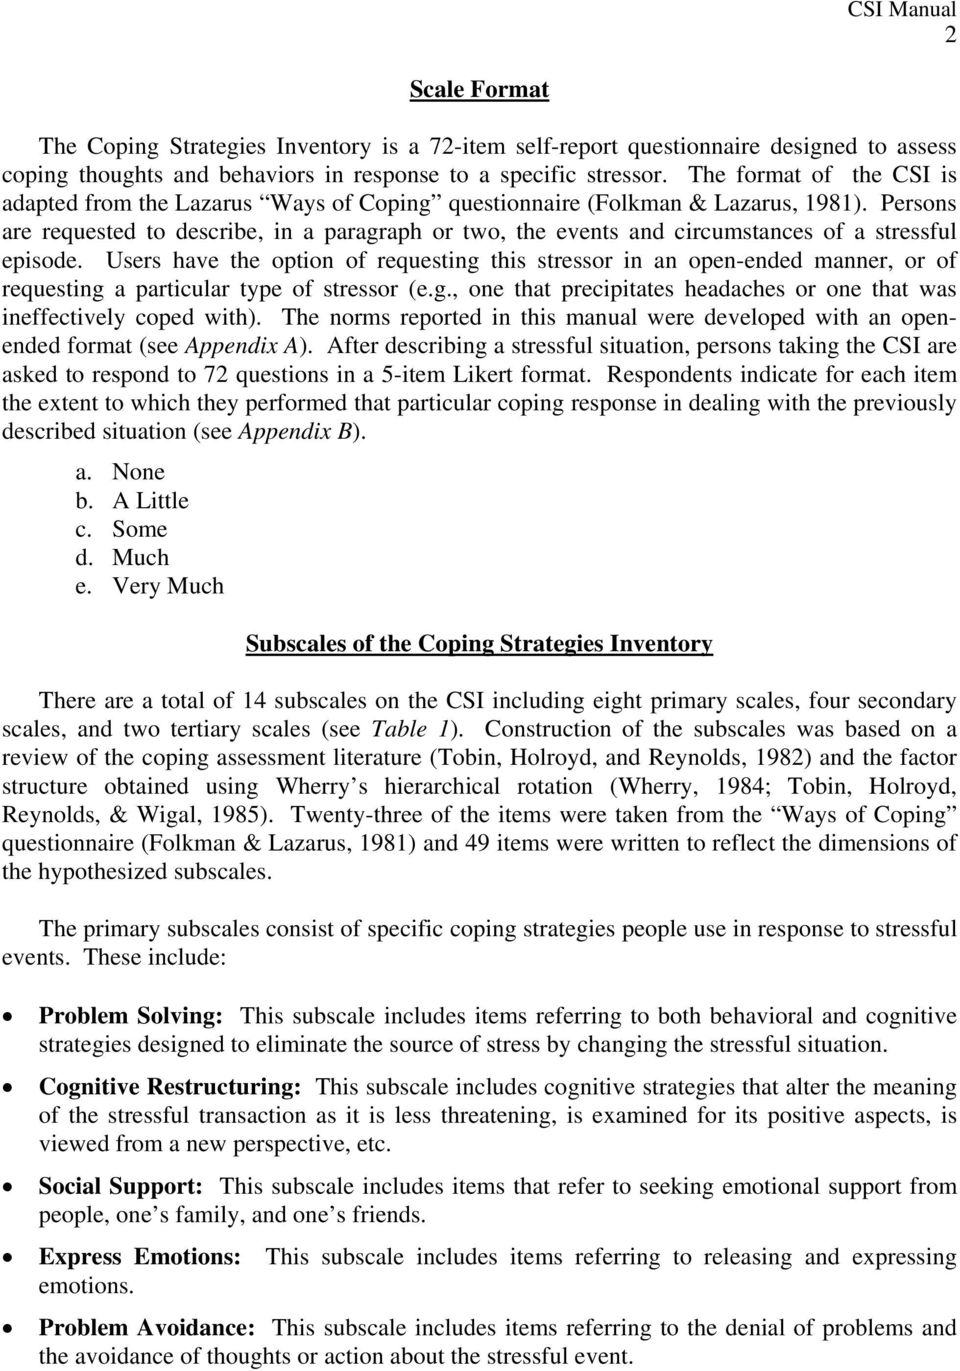 User Manual for the COPING STRATEGIES INVENTORY - PDF